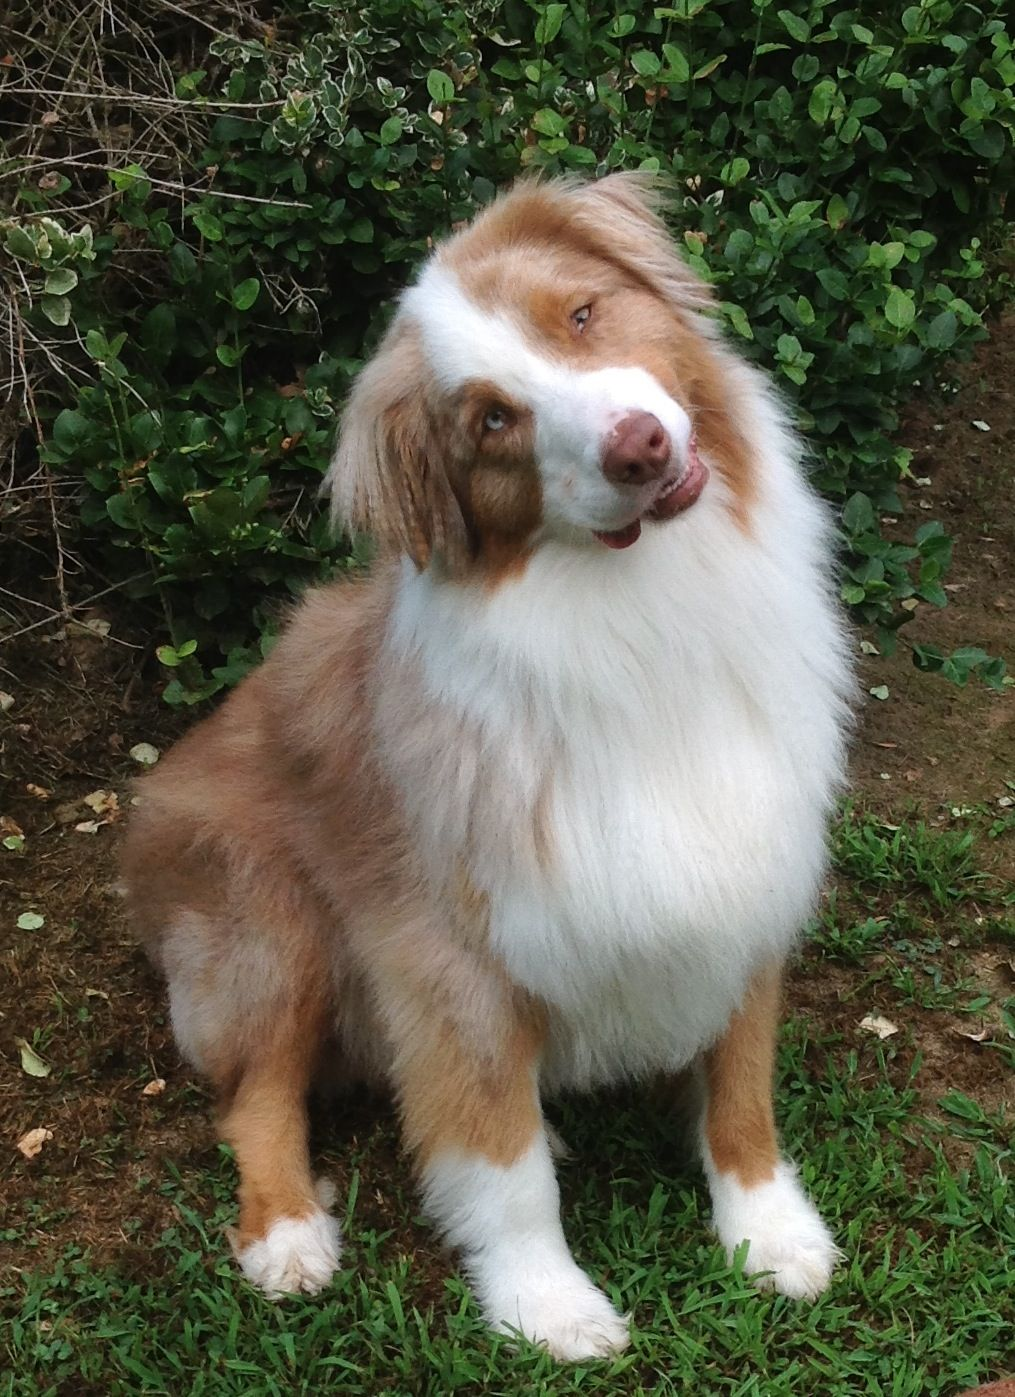 My Sweet Boy Caleb Aussie Australianshepherd Redmerle Mansbestfriend Aussie Dogs Australian Shepherd Dog Breeds